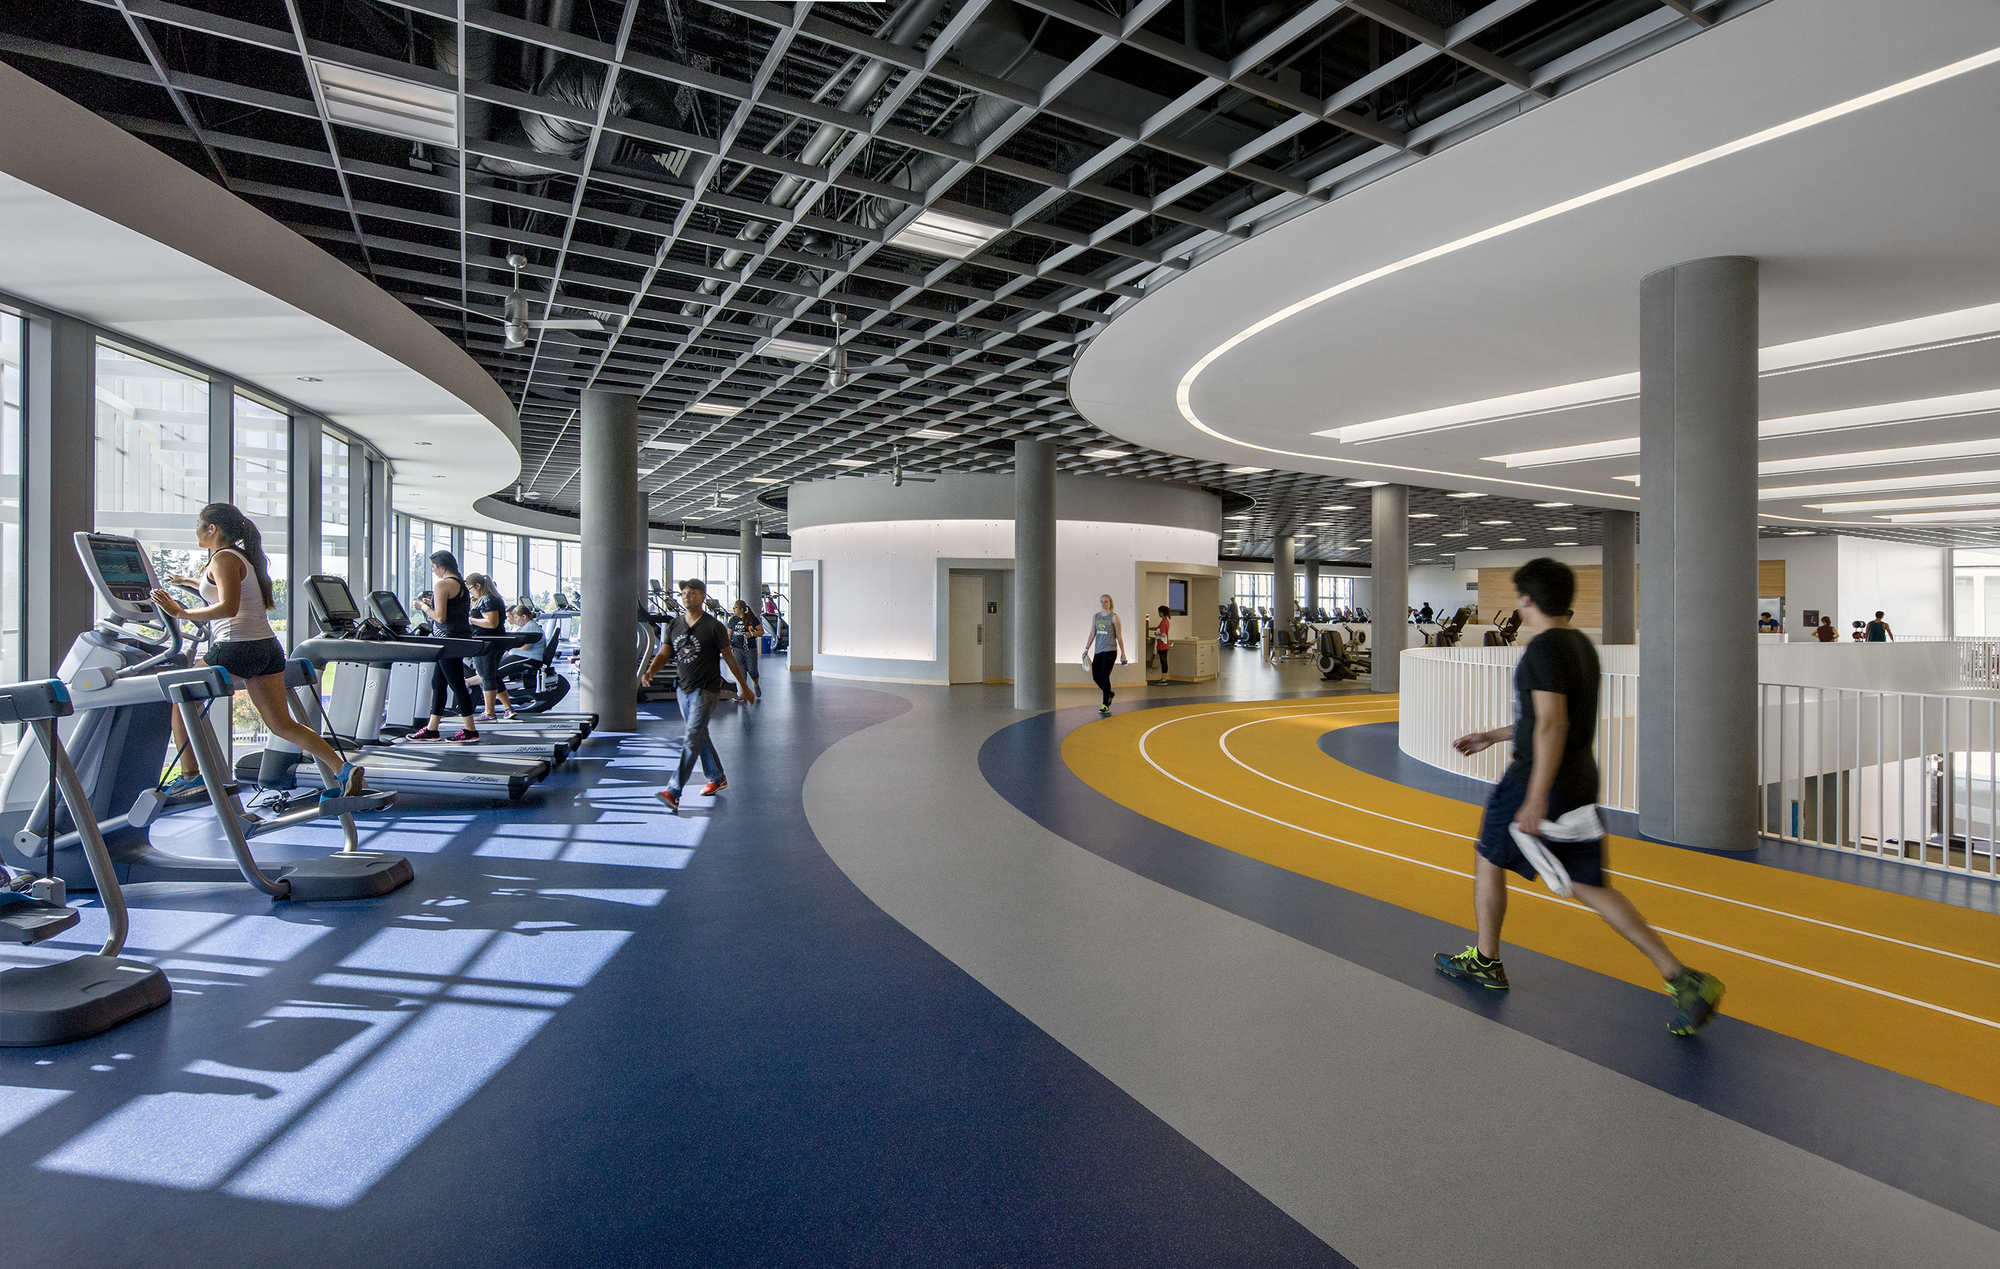 Here is the inside of a school gym.